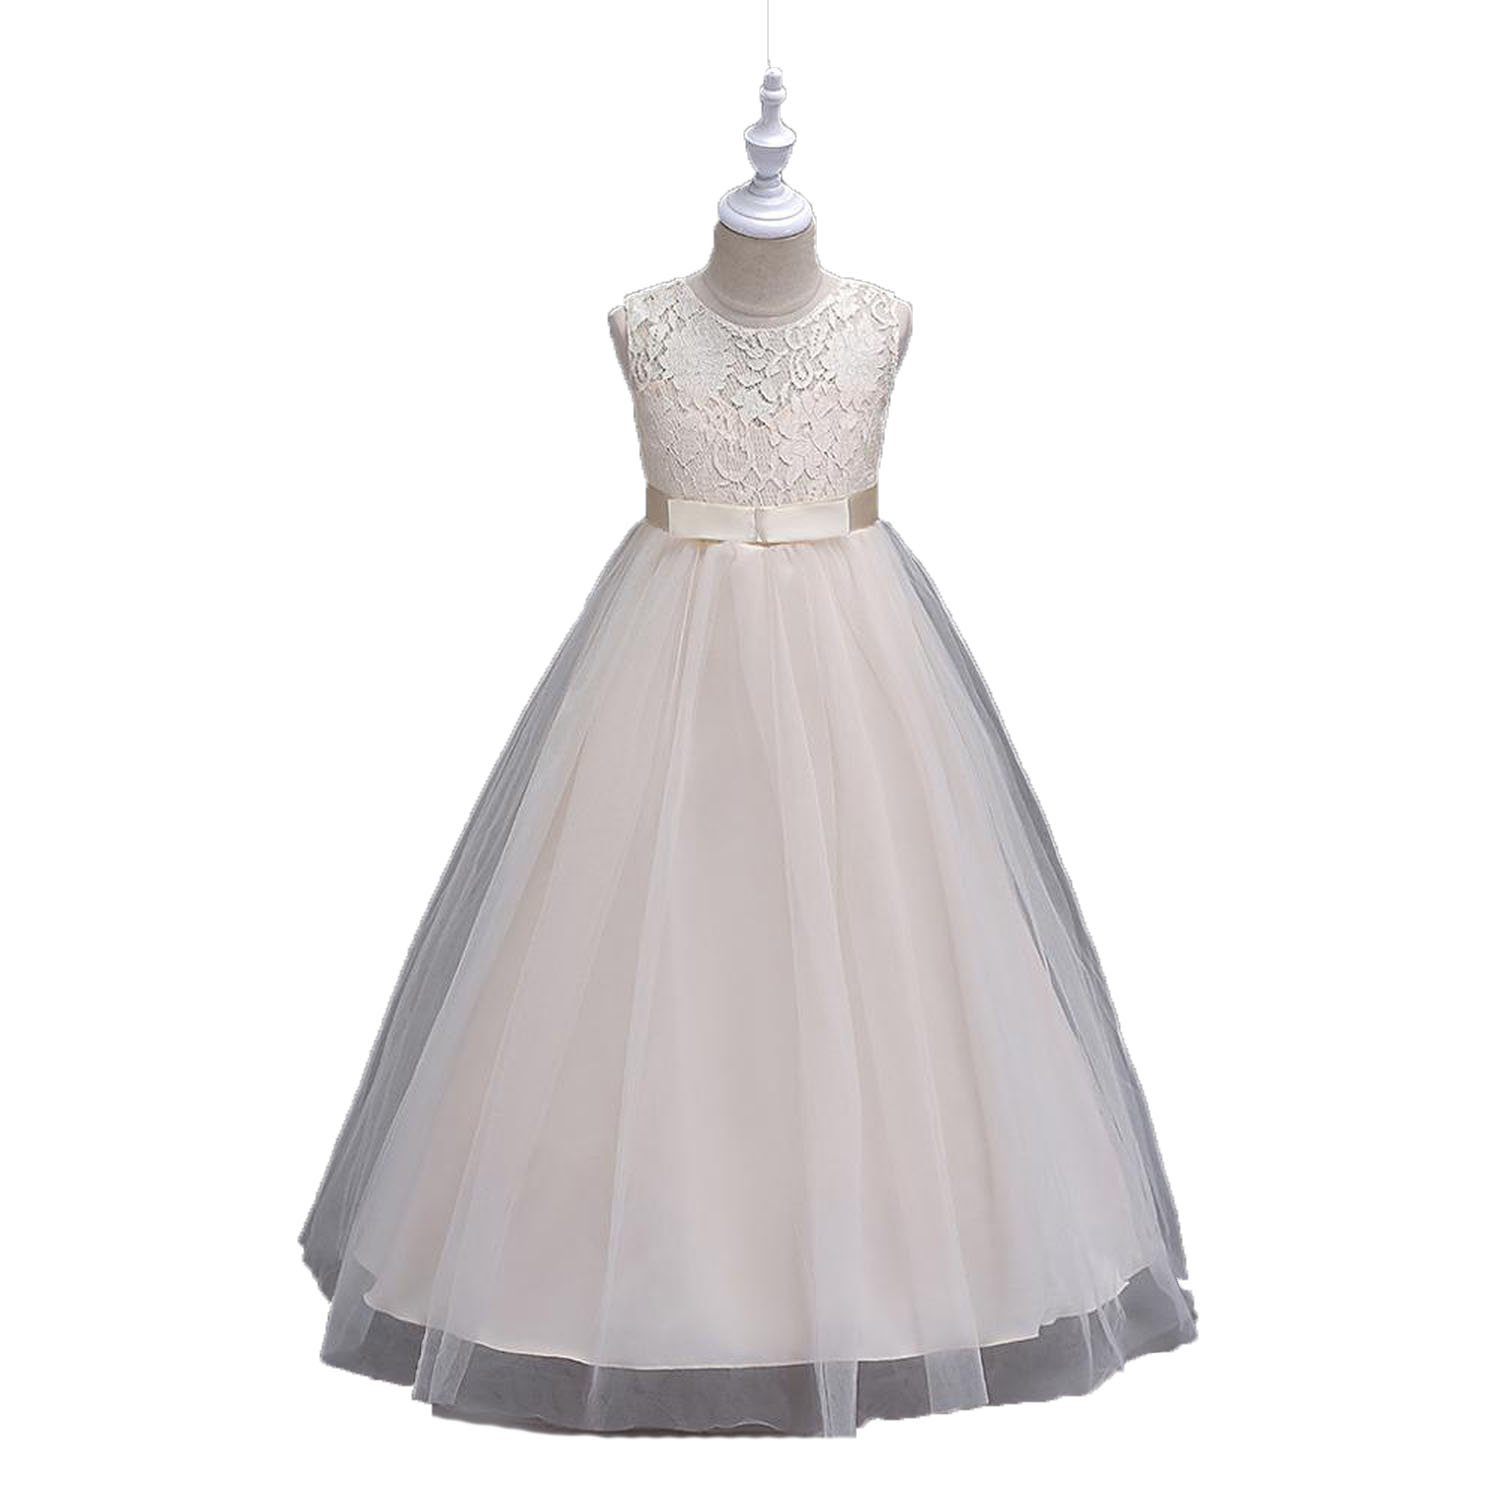 Princess Pink Lace Flower Girl Dresses Girls Pageant Dresses First Communion Dresses Kids Evening Gowns,Champagne,Child-13